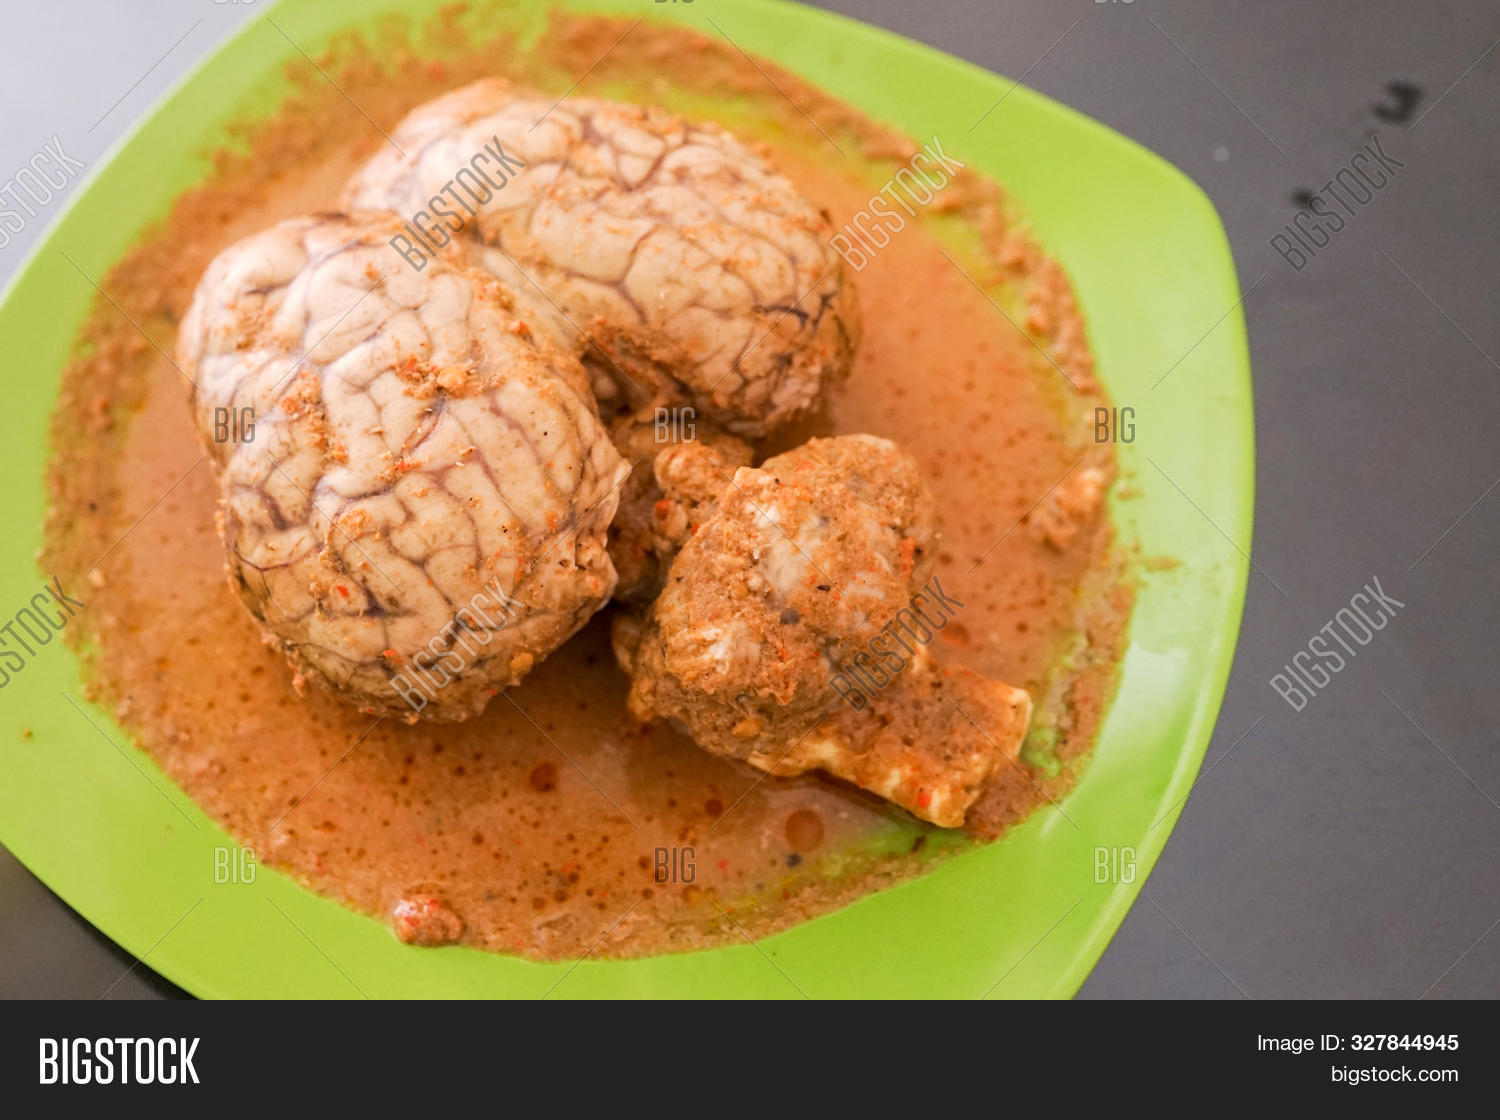 Whole Cow Brain Padang Image Photo Free Trial Bigstock